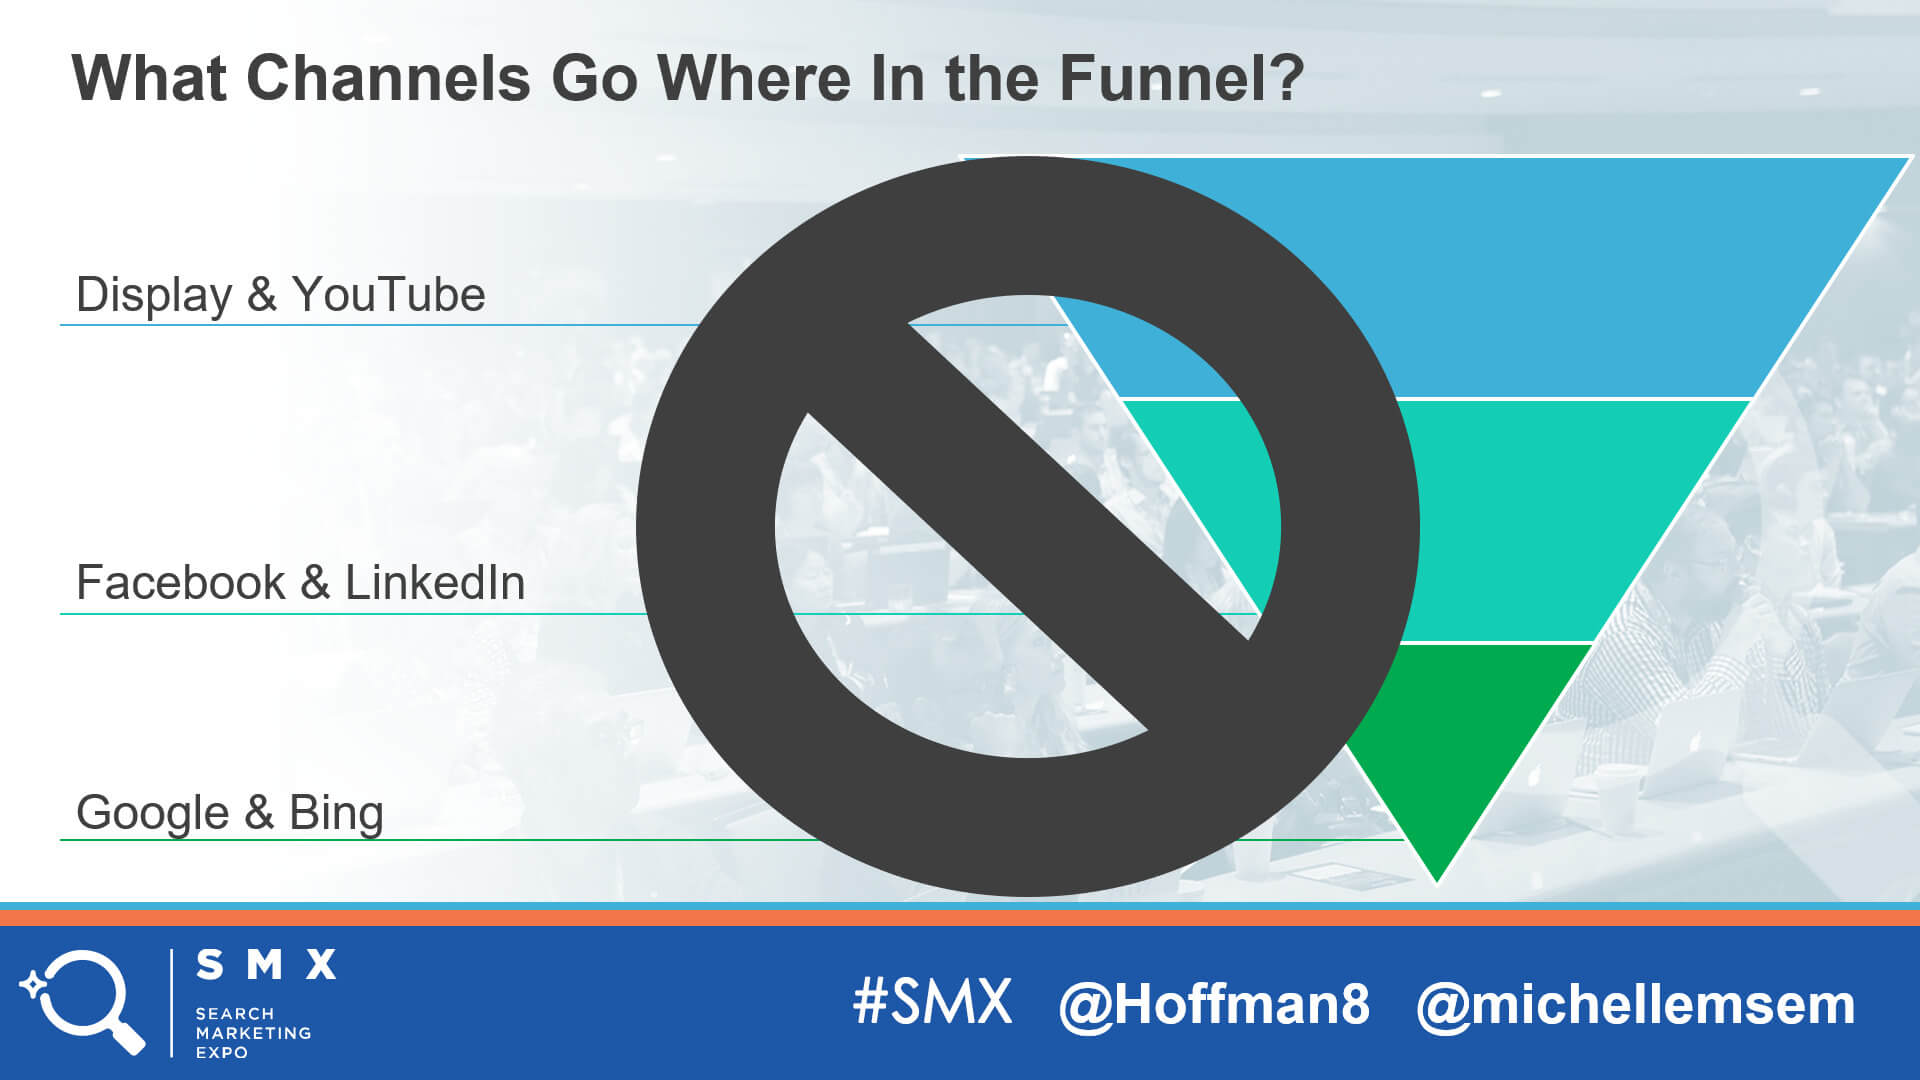 here's how you align marketing strategy with your customer's journey - funnels go wrong - Here's how you align marketing strategy with your customer's journey